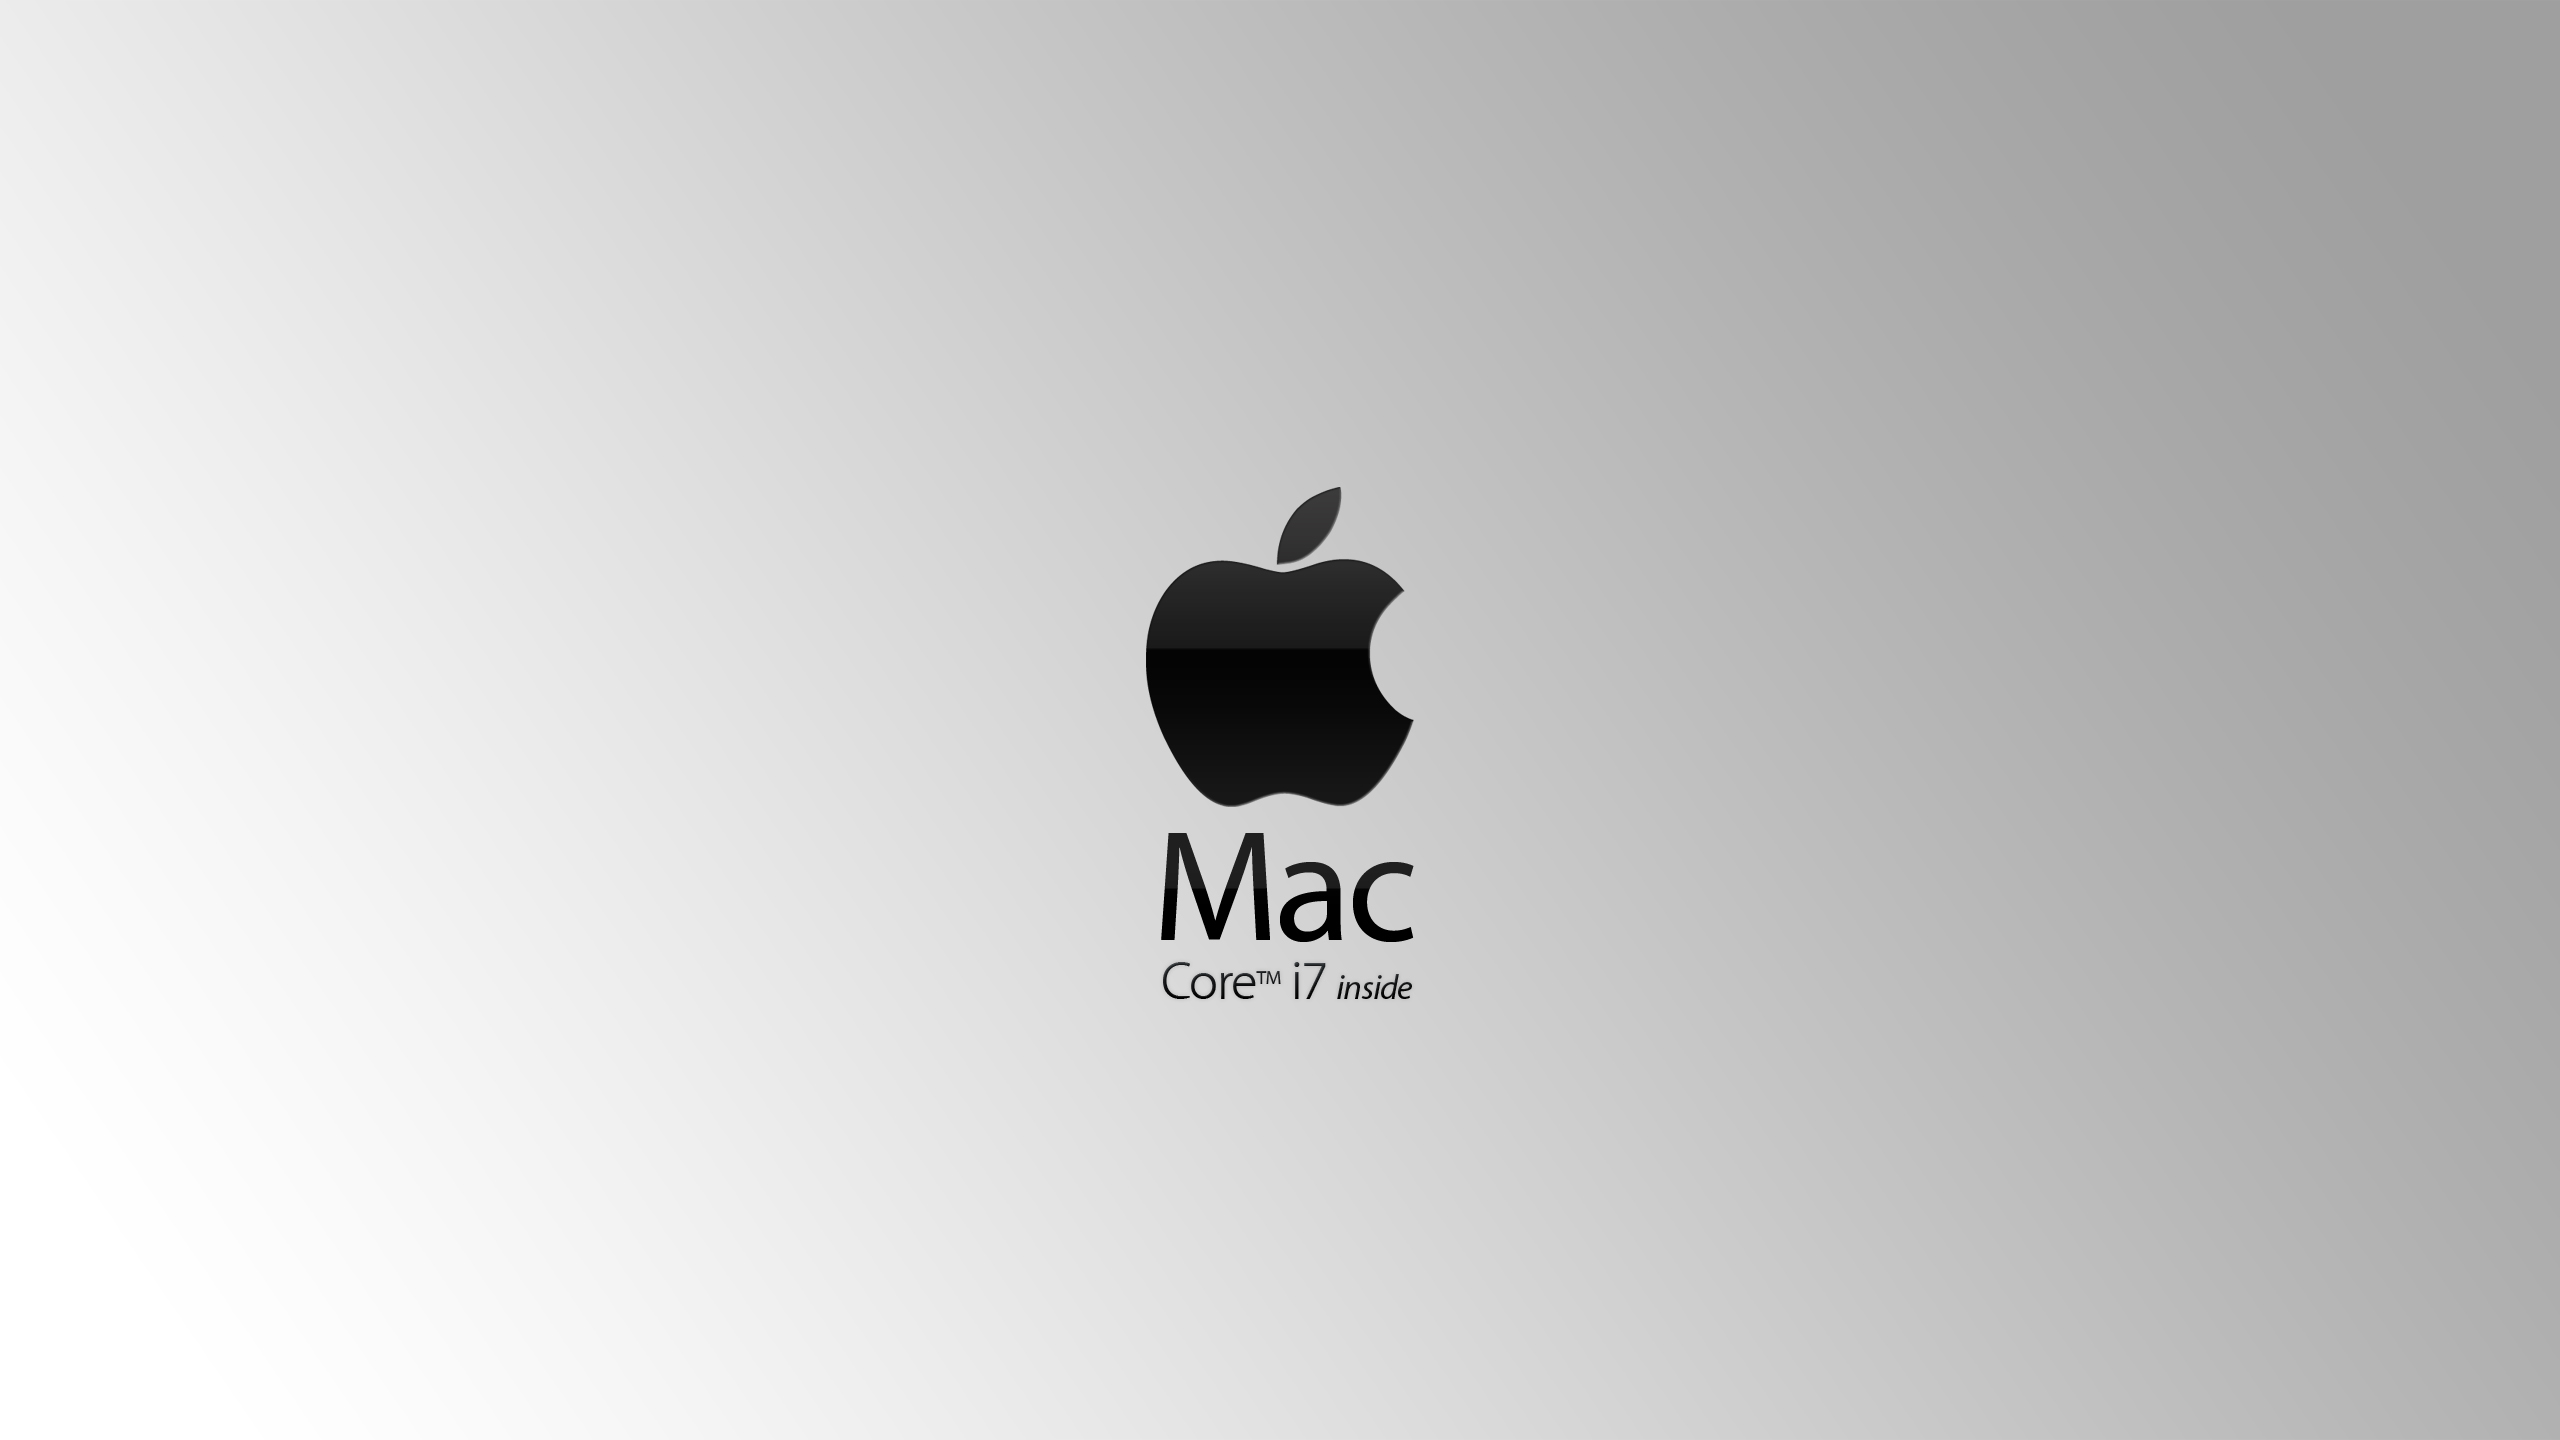 macbook air desktop wallpaper dimensions